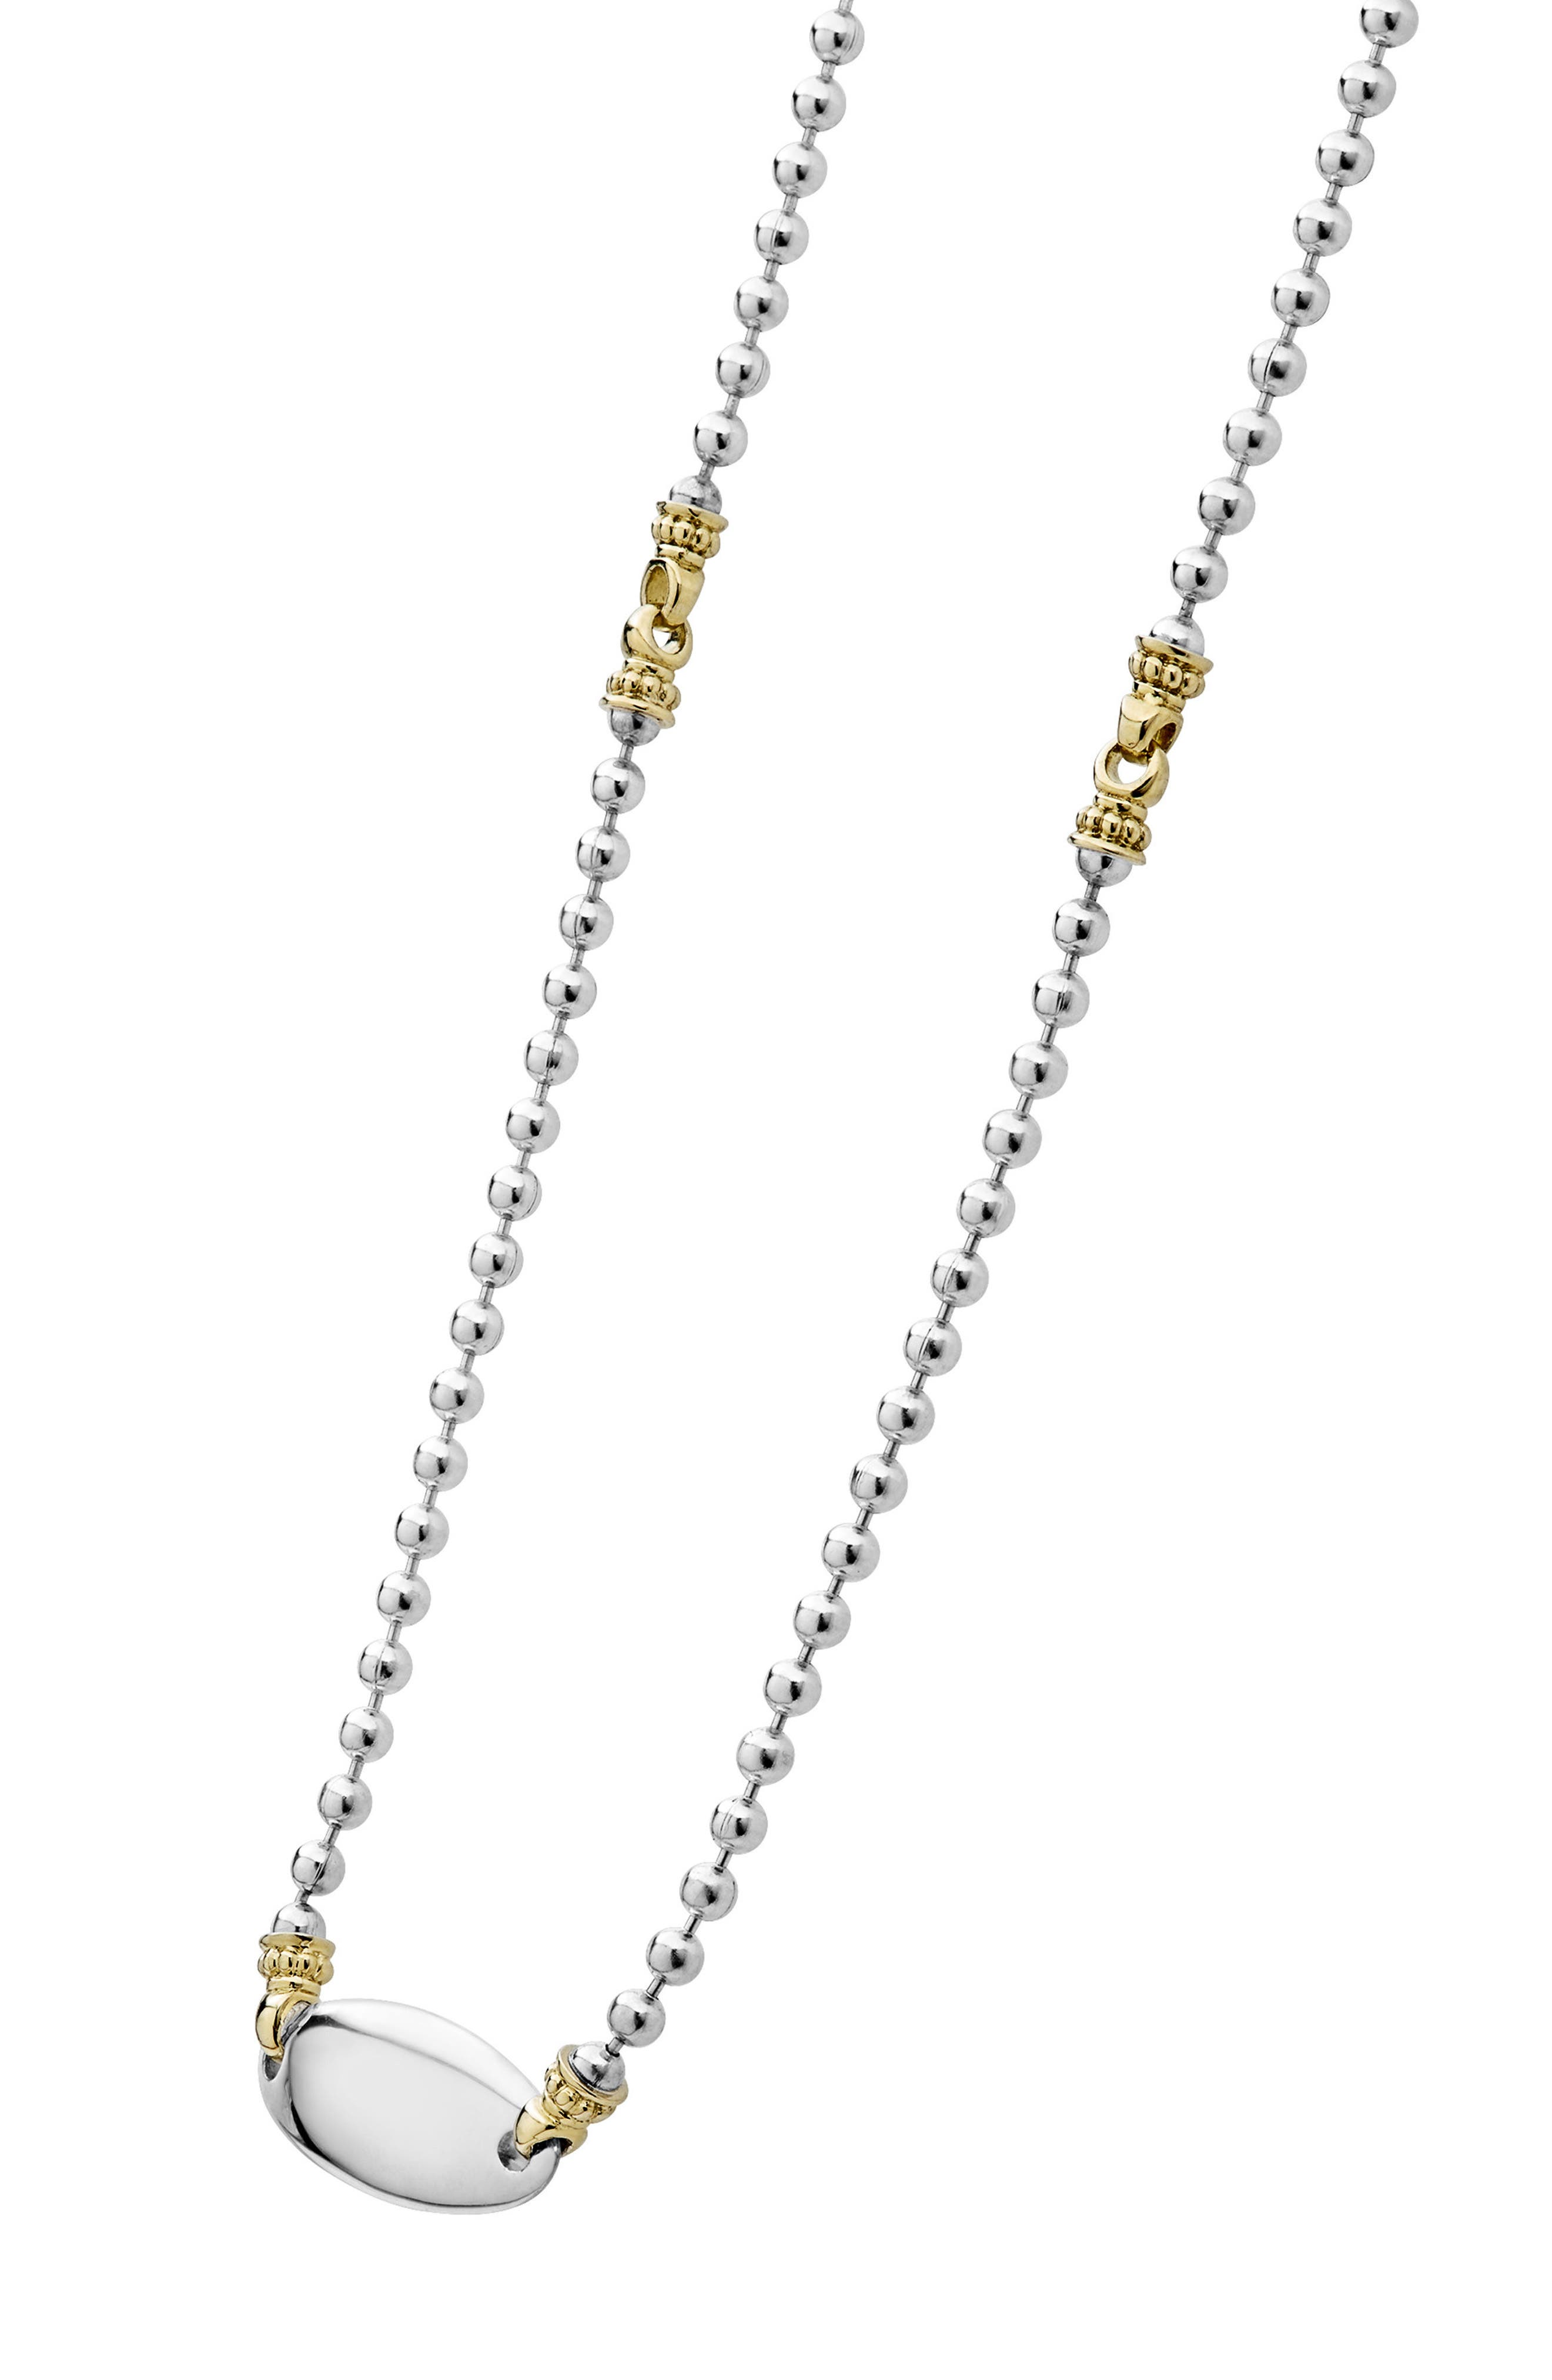 Beloved Oval Plate Chain Necklace,                             Alternate thumbnail 6, color,                             SILVER